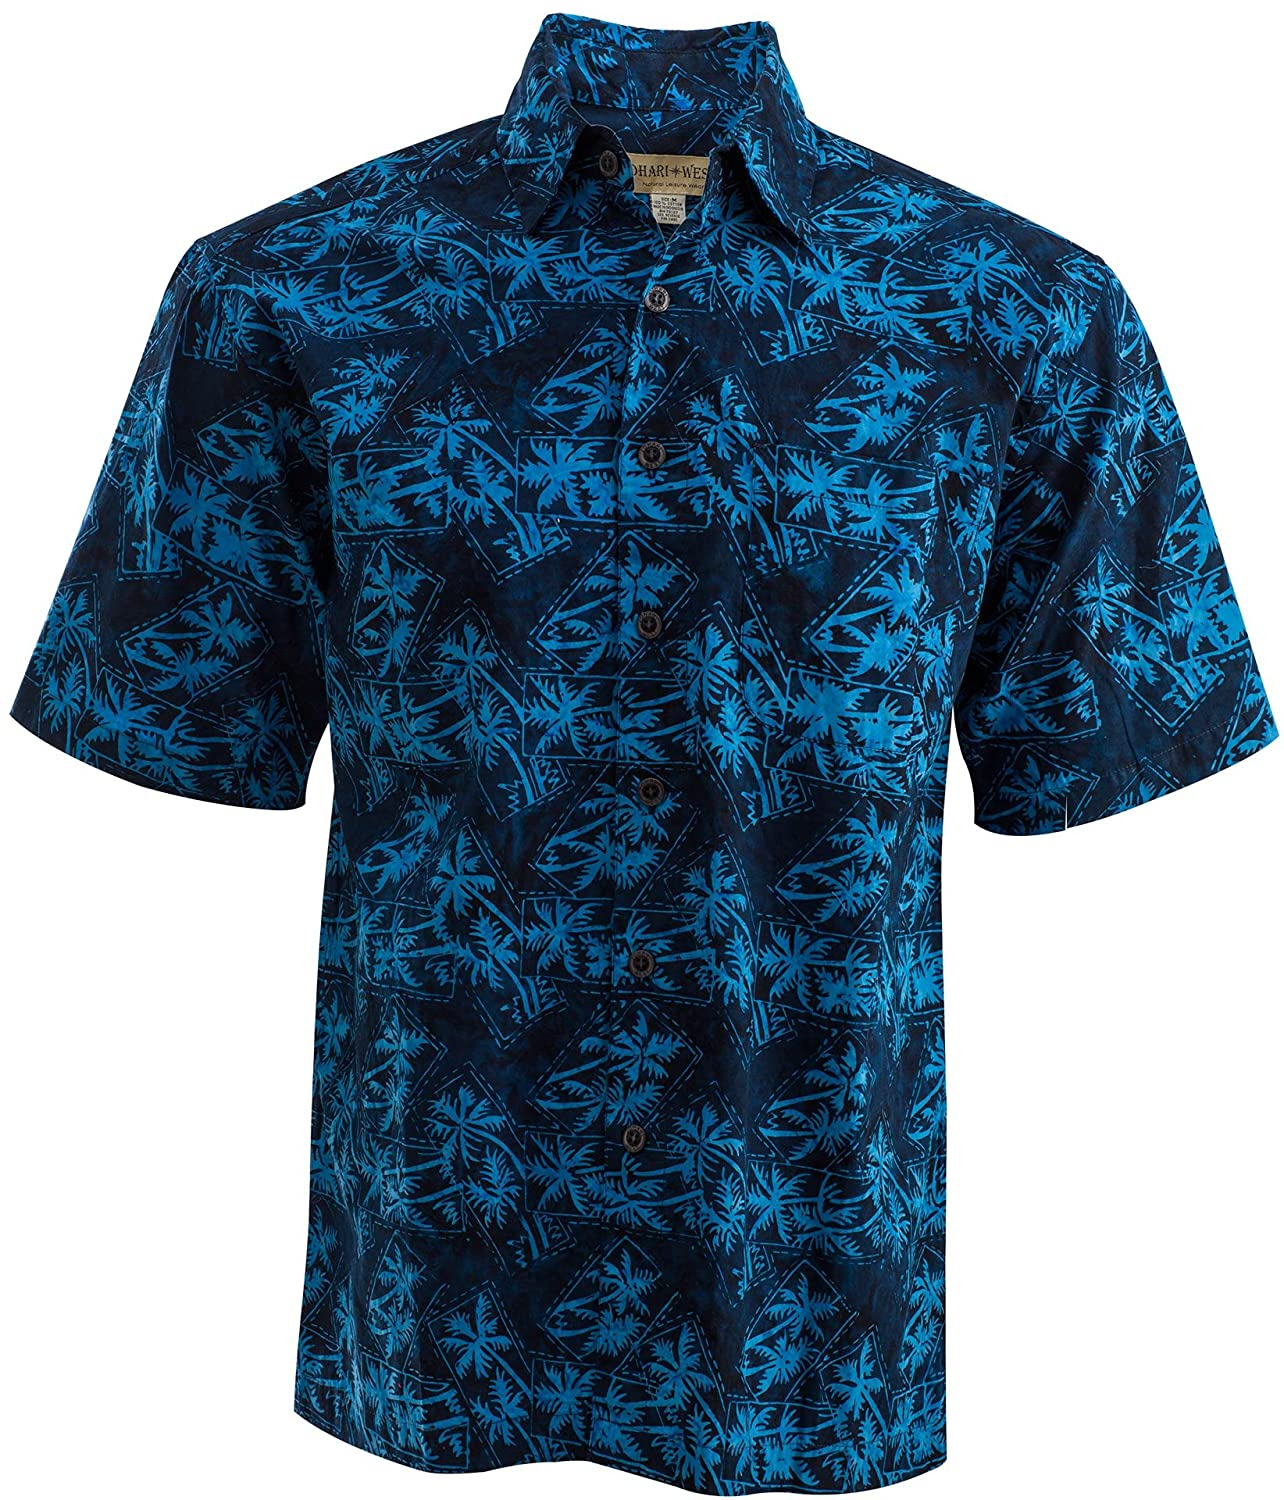 5c4ae15e 100% NATURAL COTTON – This shirt is made from the highest quality  Indonesian cotton with single breast pocket. HAND PRINTED BATIK DESIGN –  Each shirt is ...